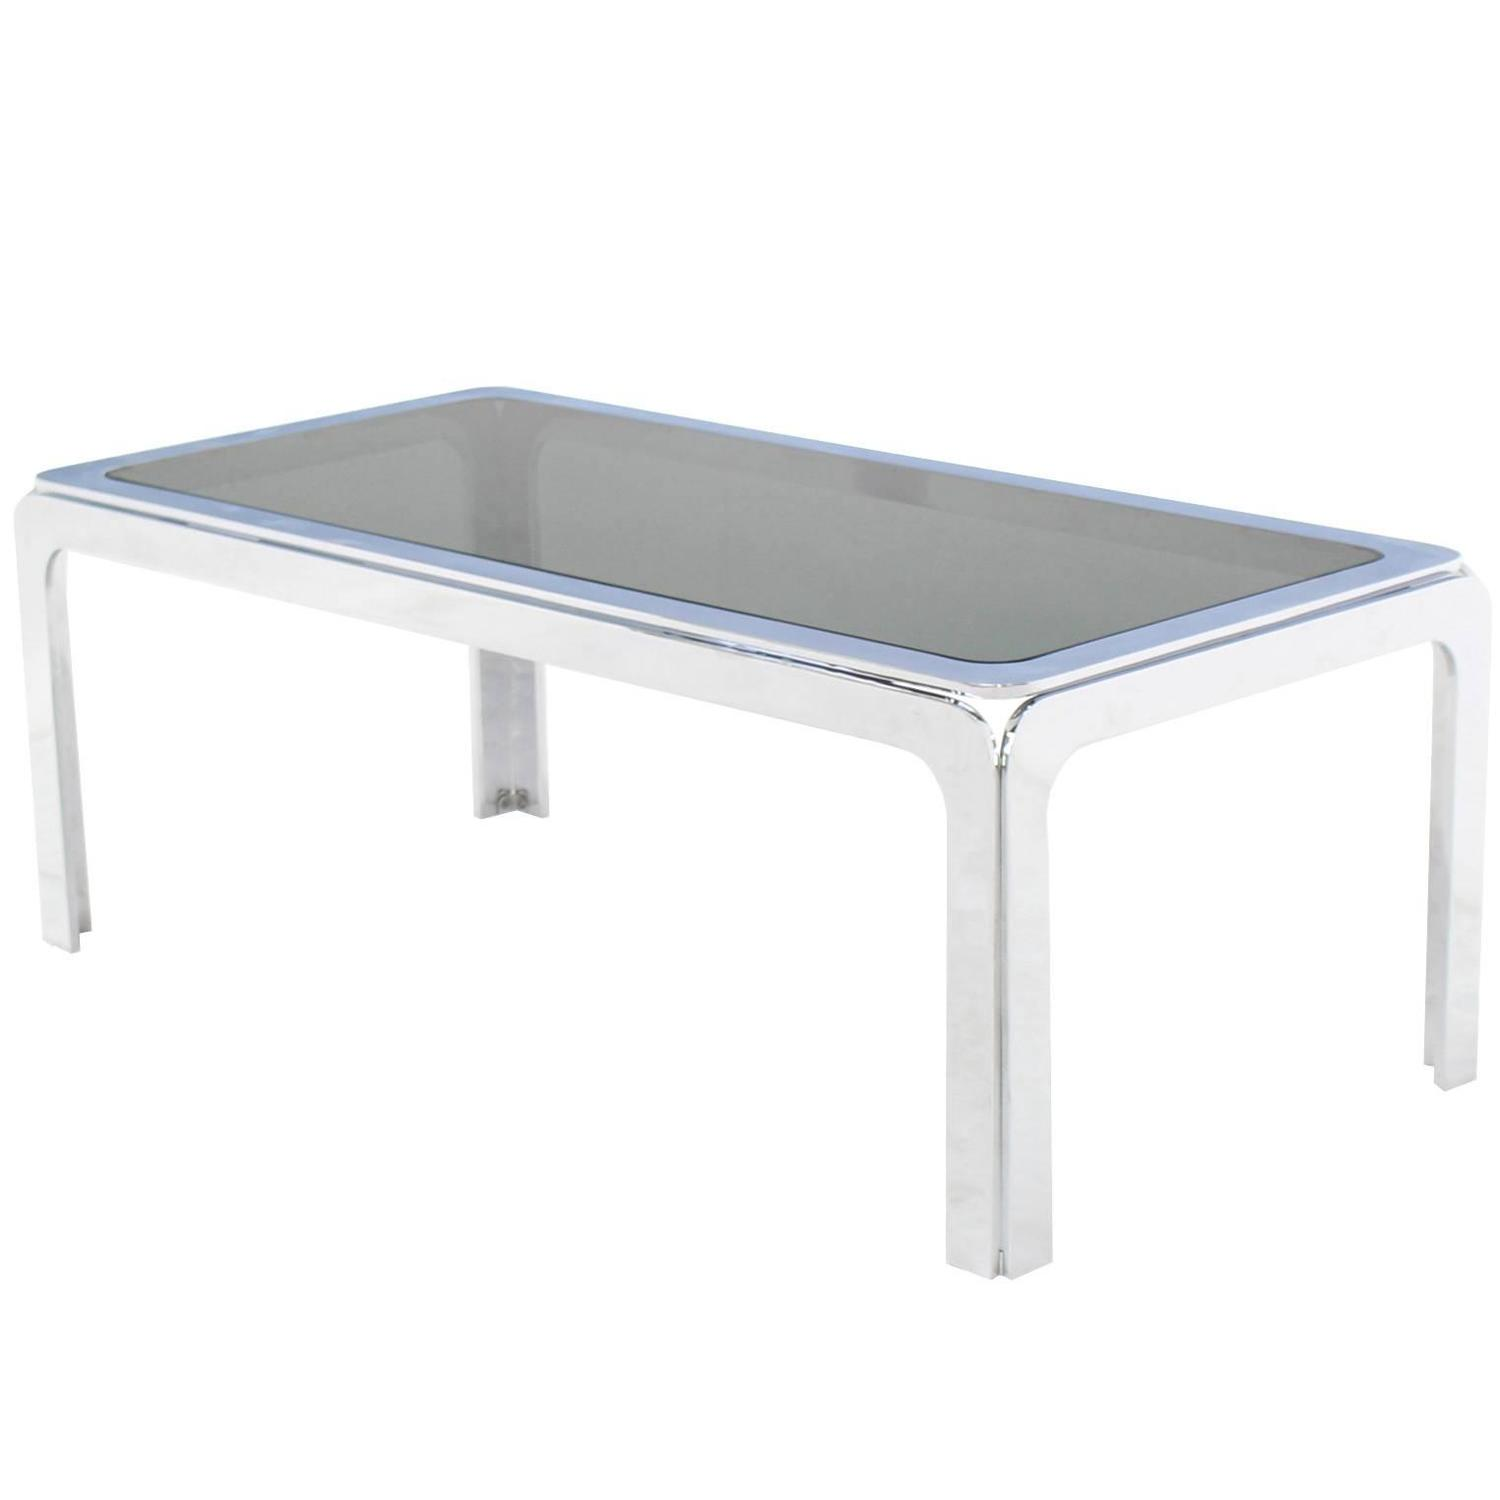 Chrome And Smoke Glass Top Rectangular Coffee Table For Sale At 1stdibs